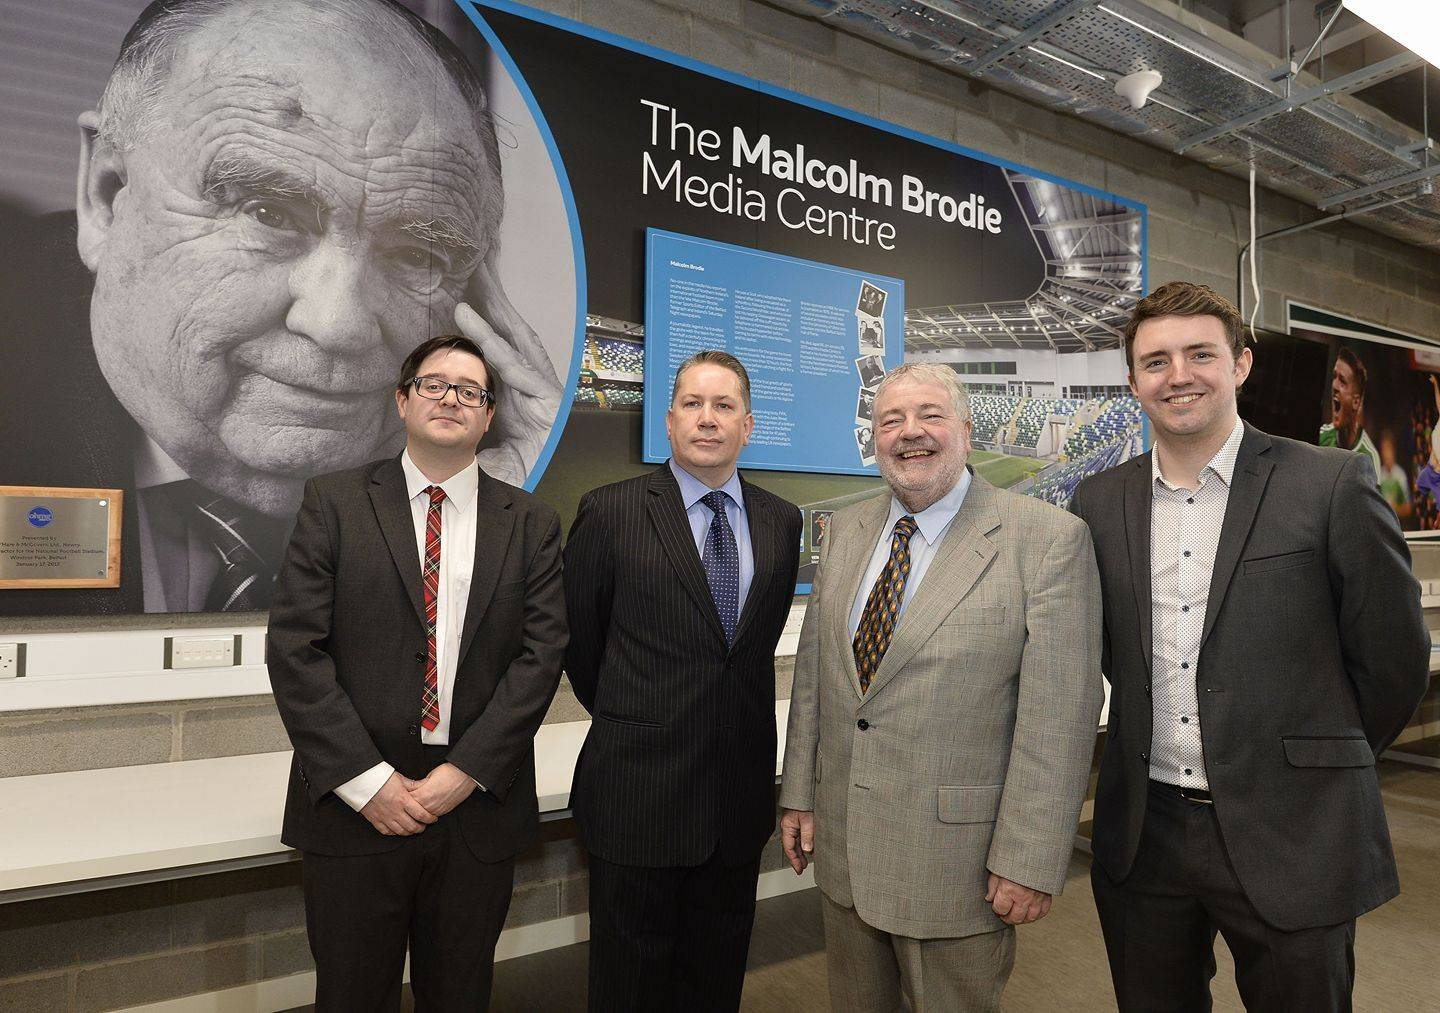 Attending the opening of the Dr Malcolm Brodie Media Centre